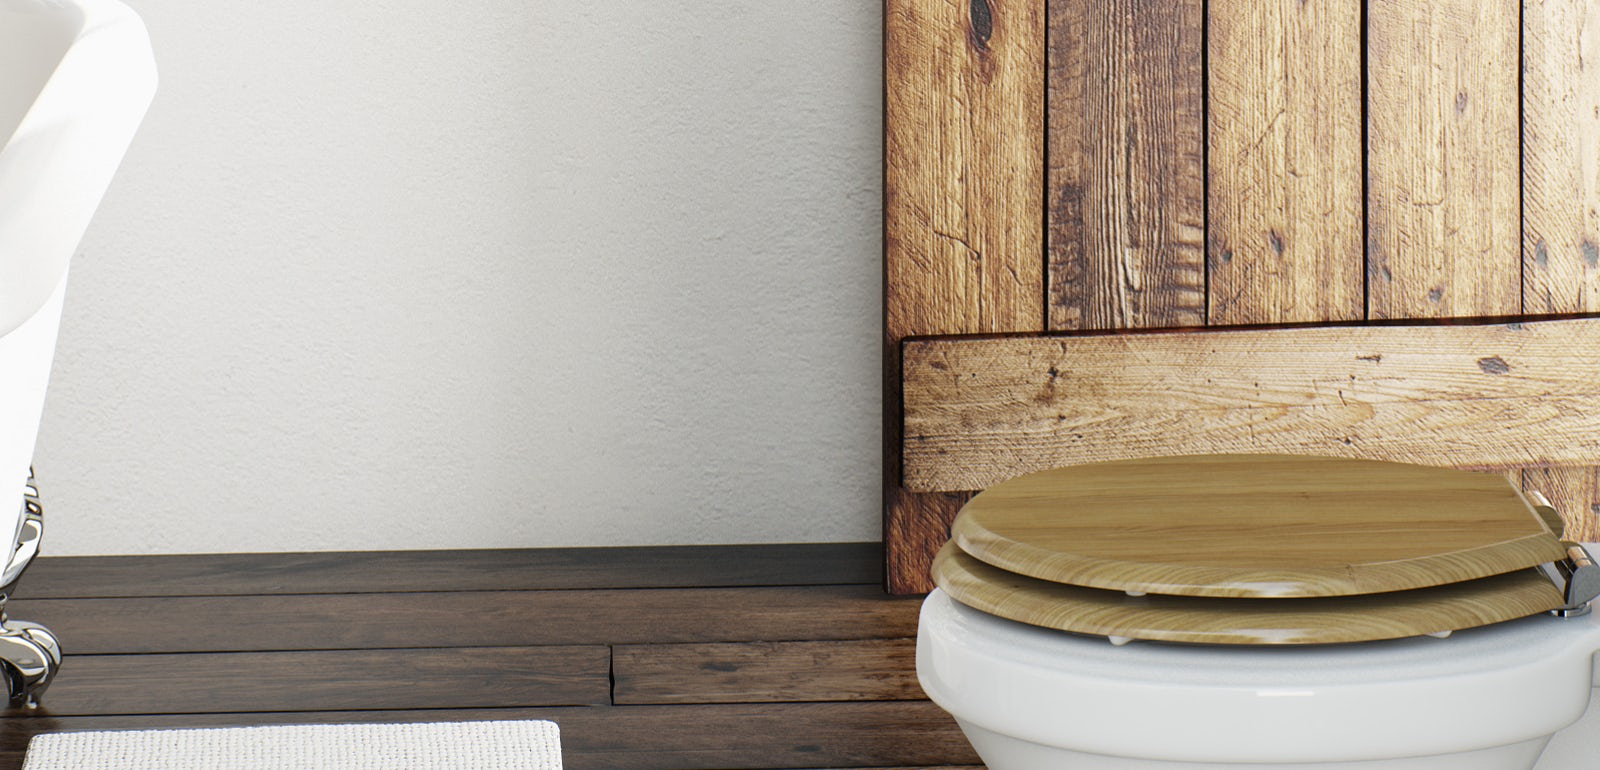 Get the natural look - The latest bathroom trends